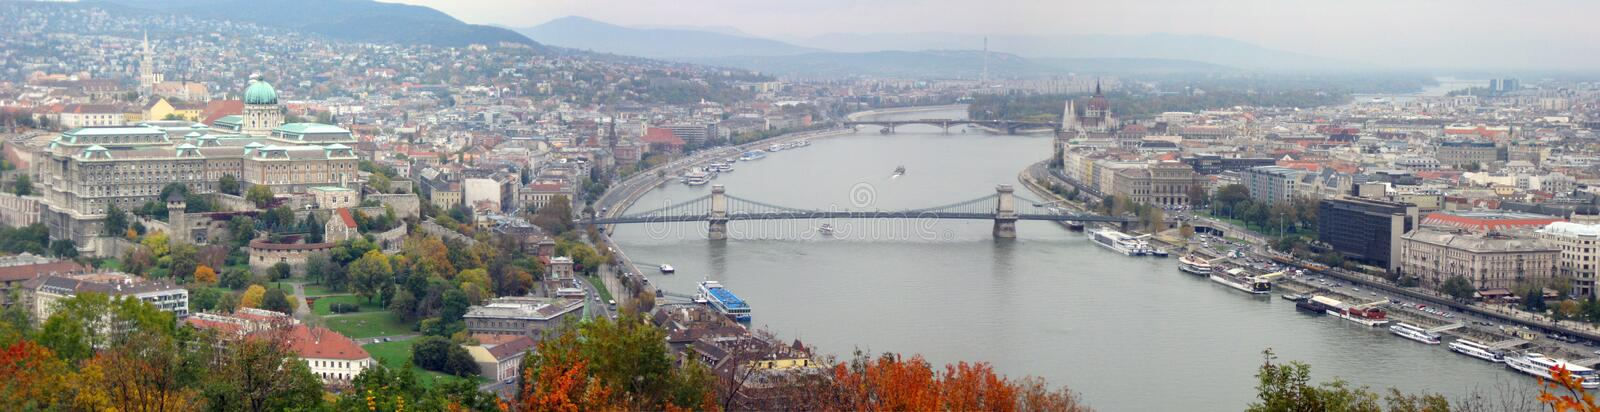 Download Budapest stock photo. Image of panoramic, ship, cityscape - 16618382